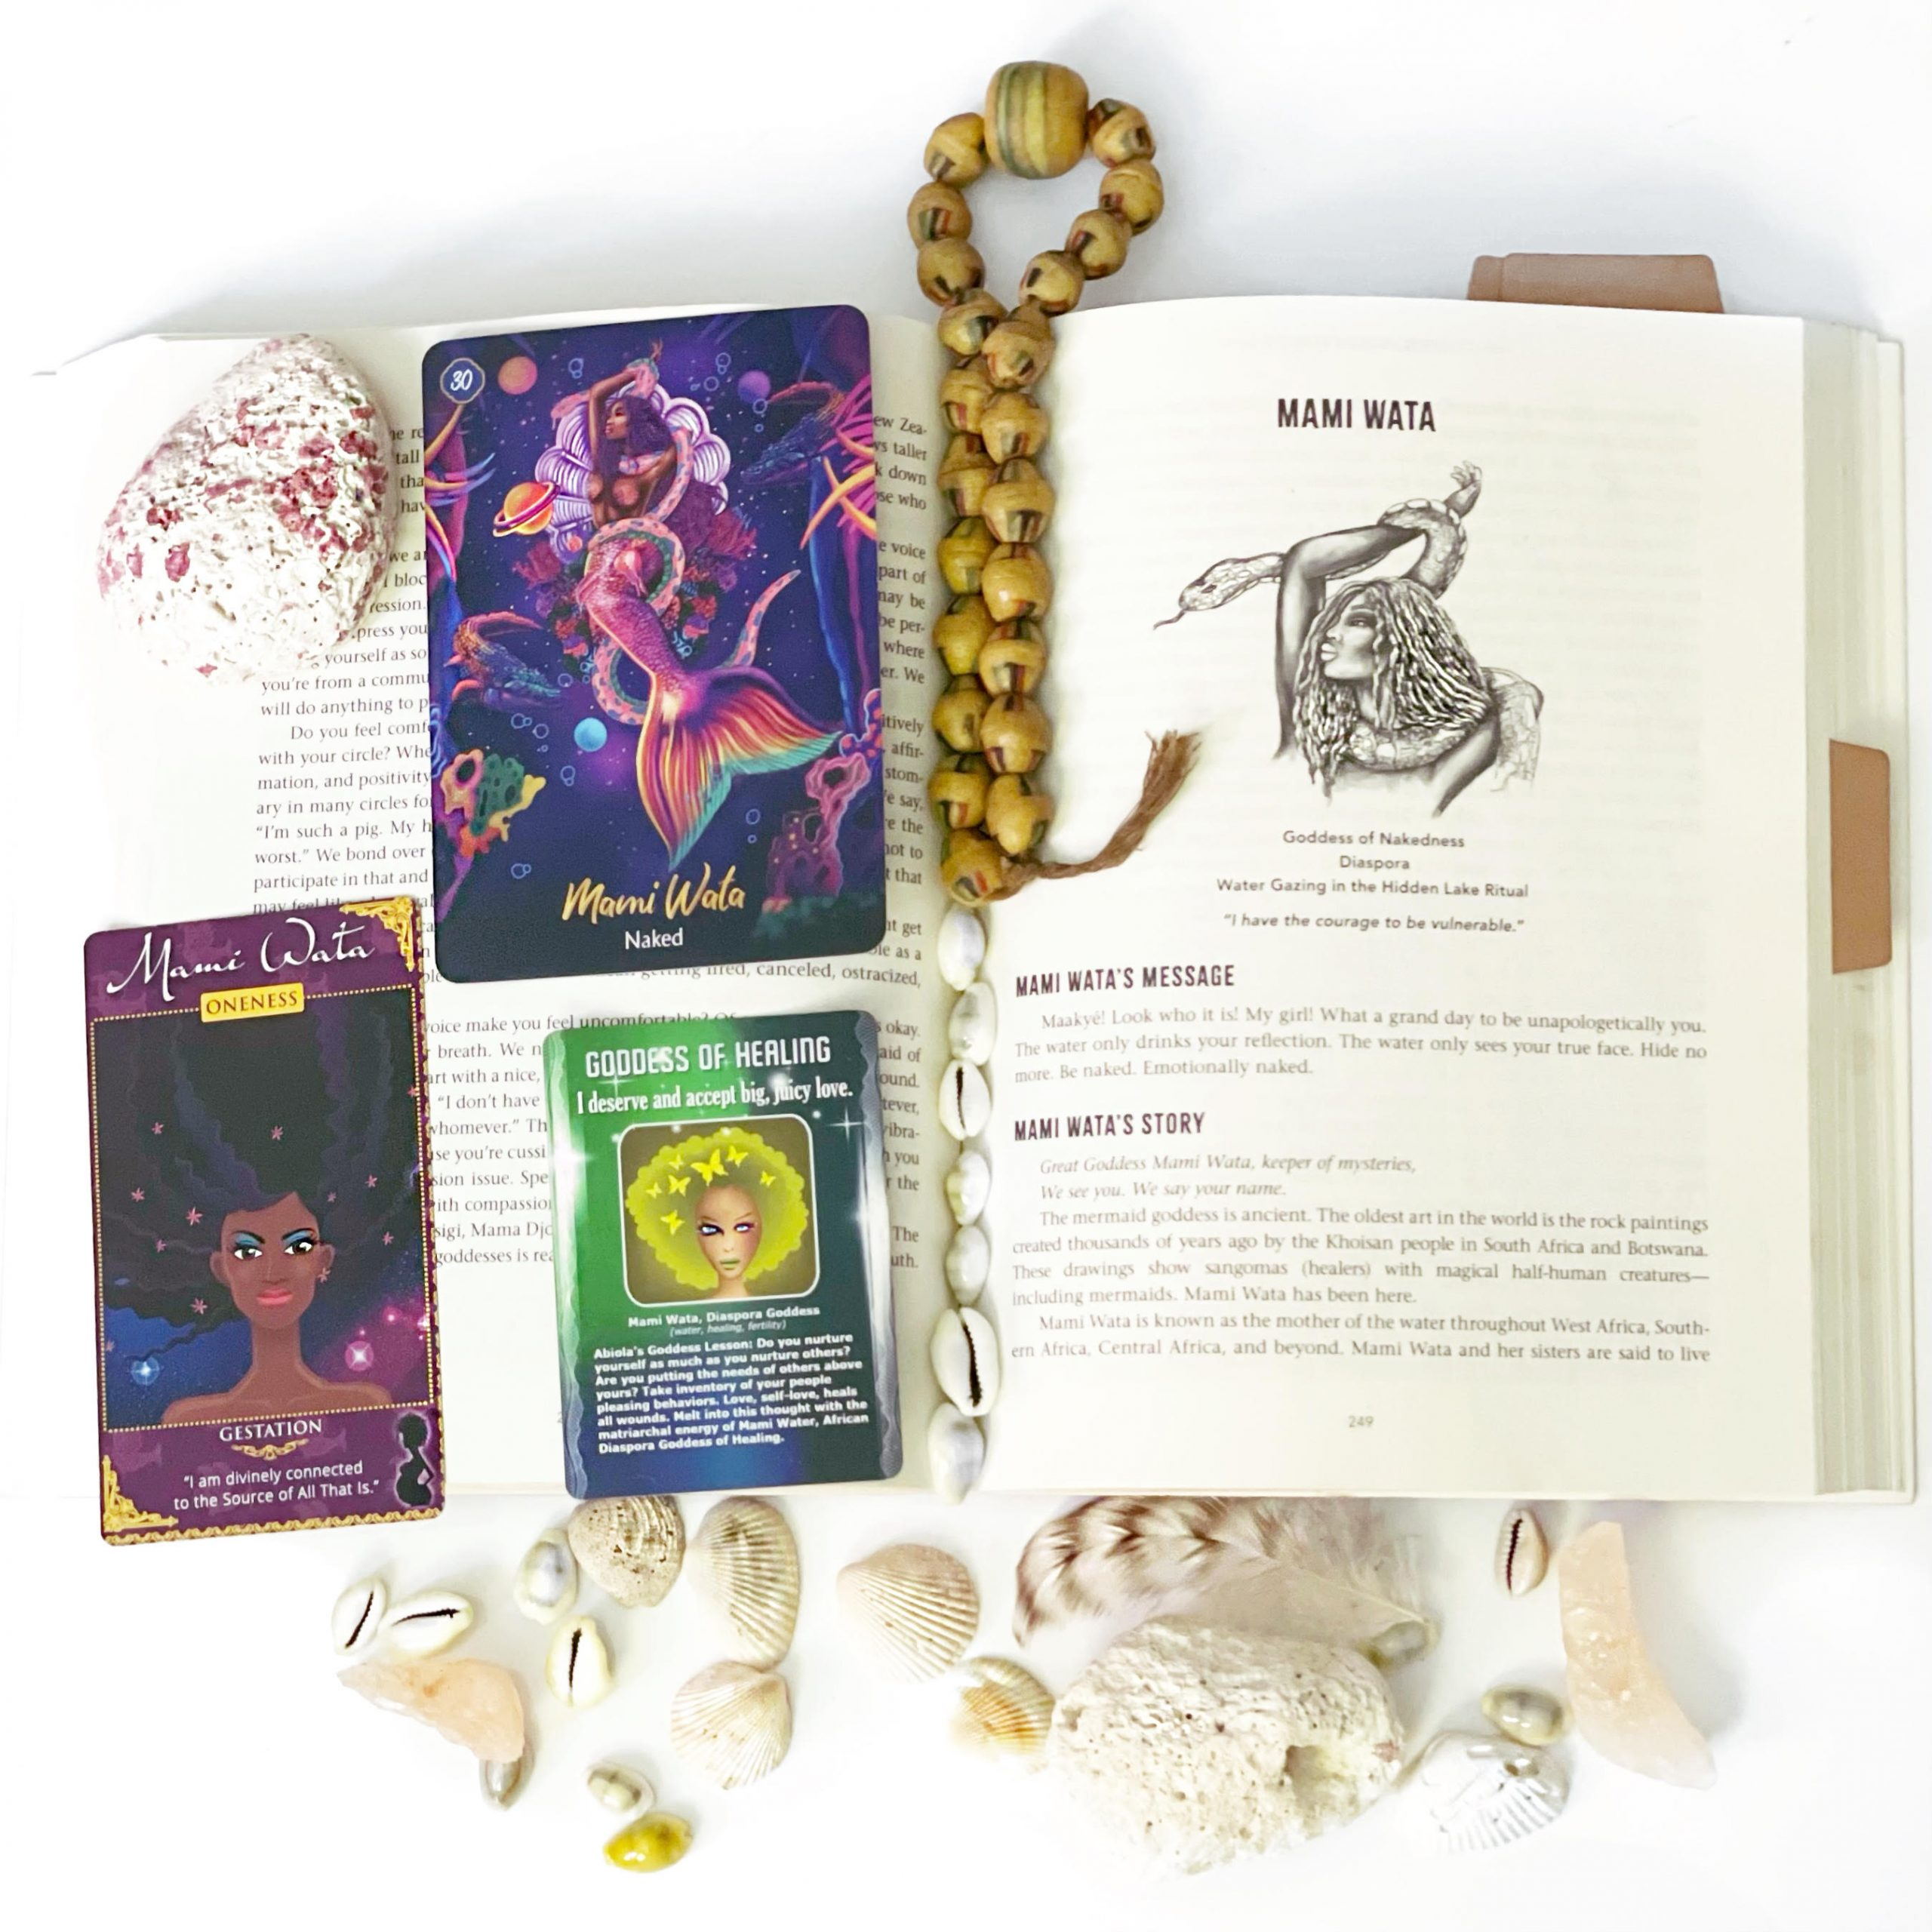 African Goddess Initiation Book with Oracle Cards by Abiola Abrams